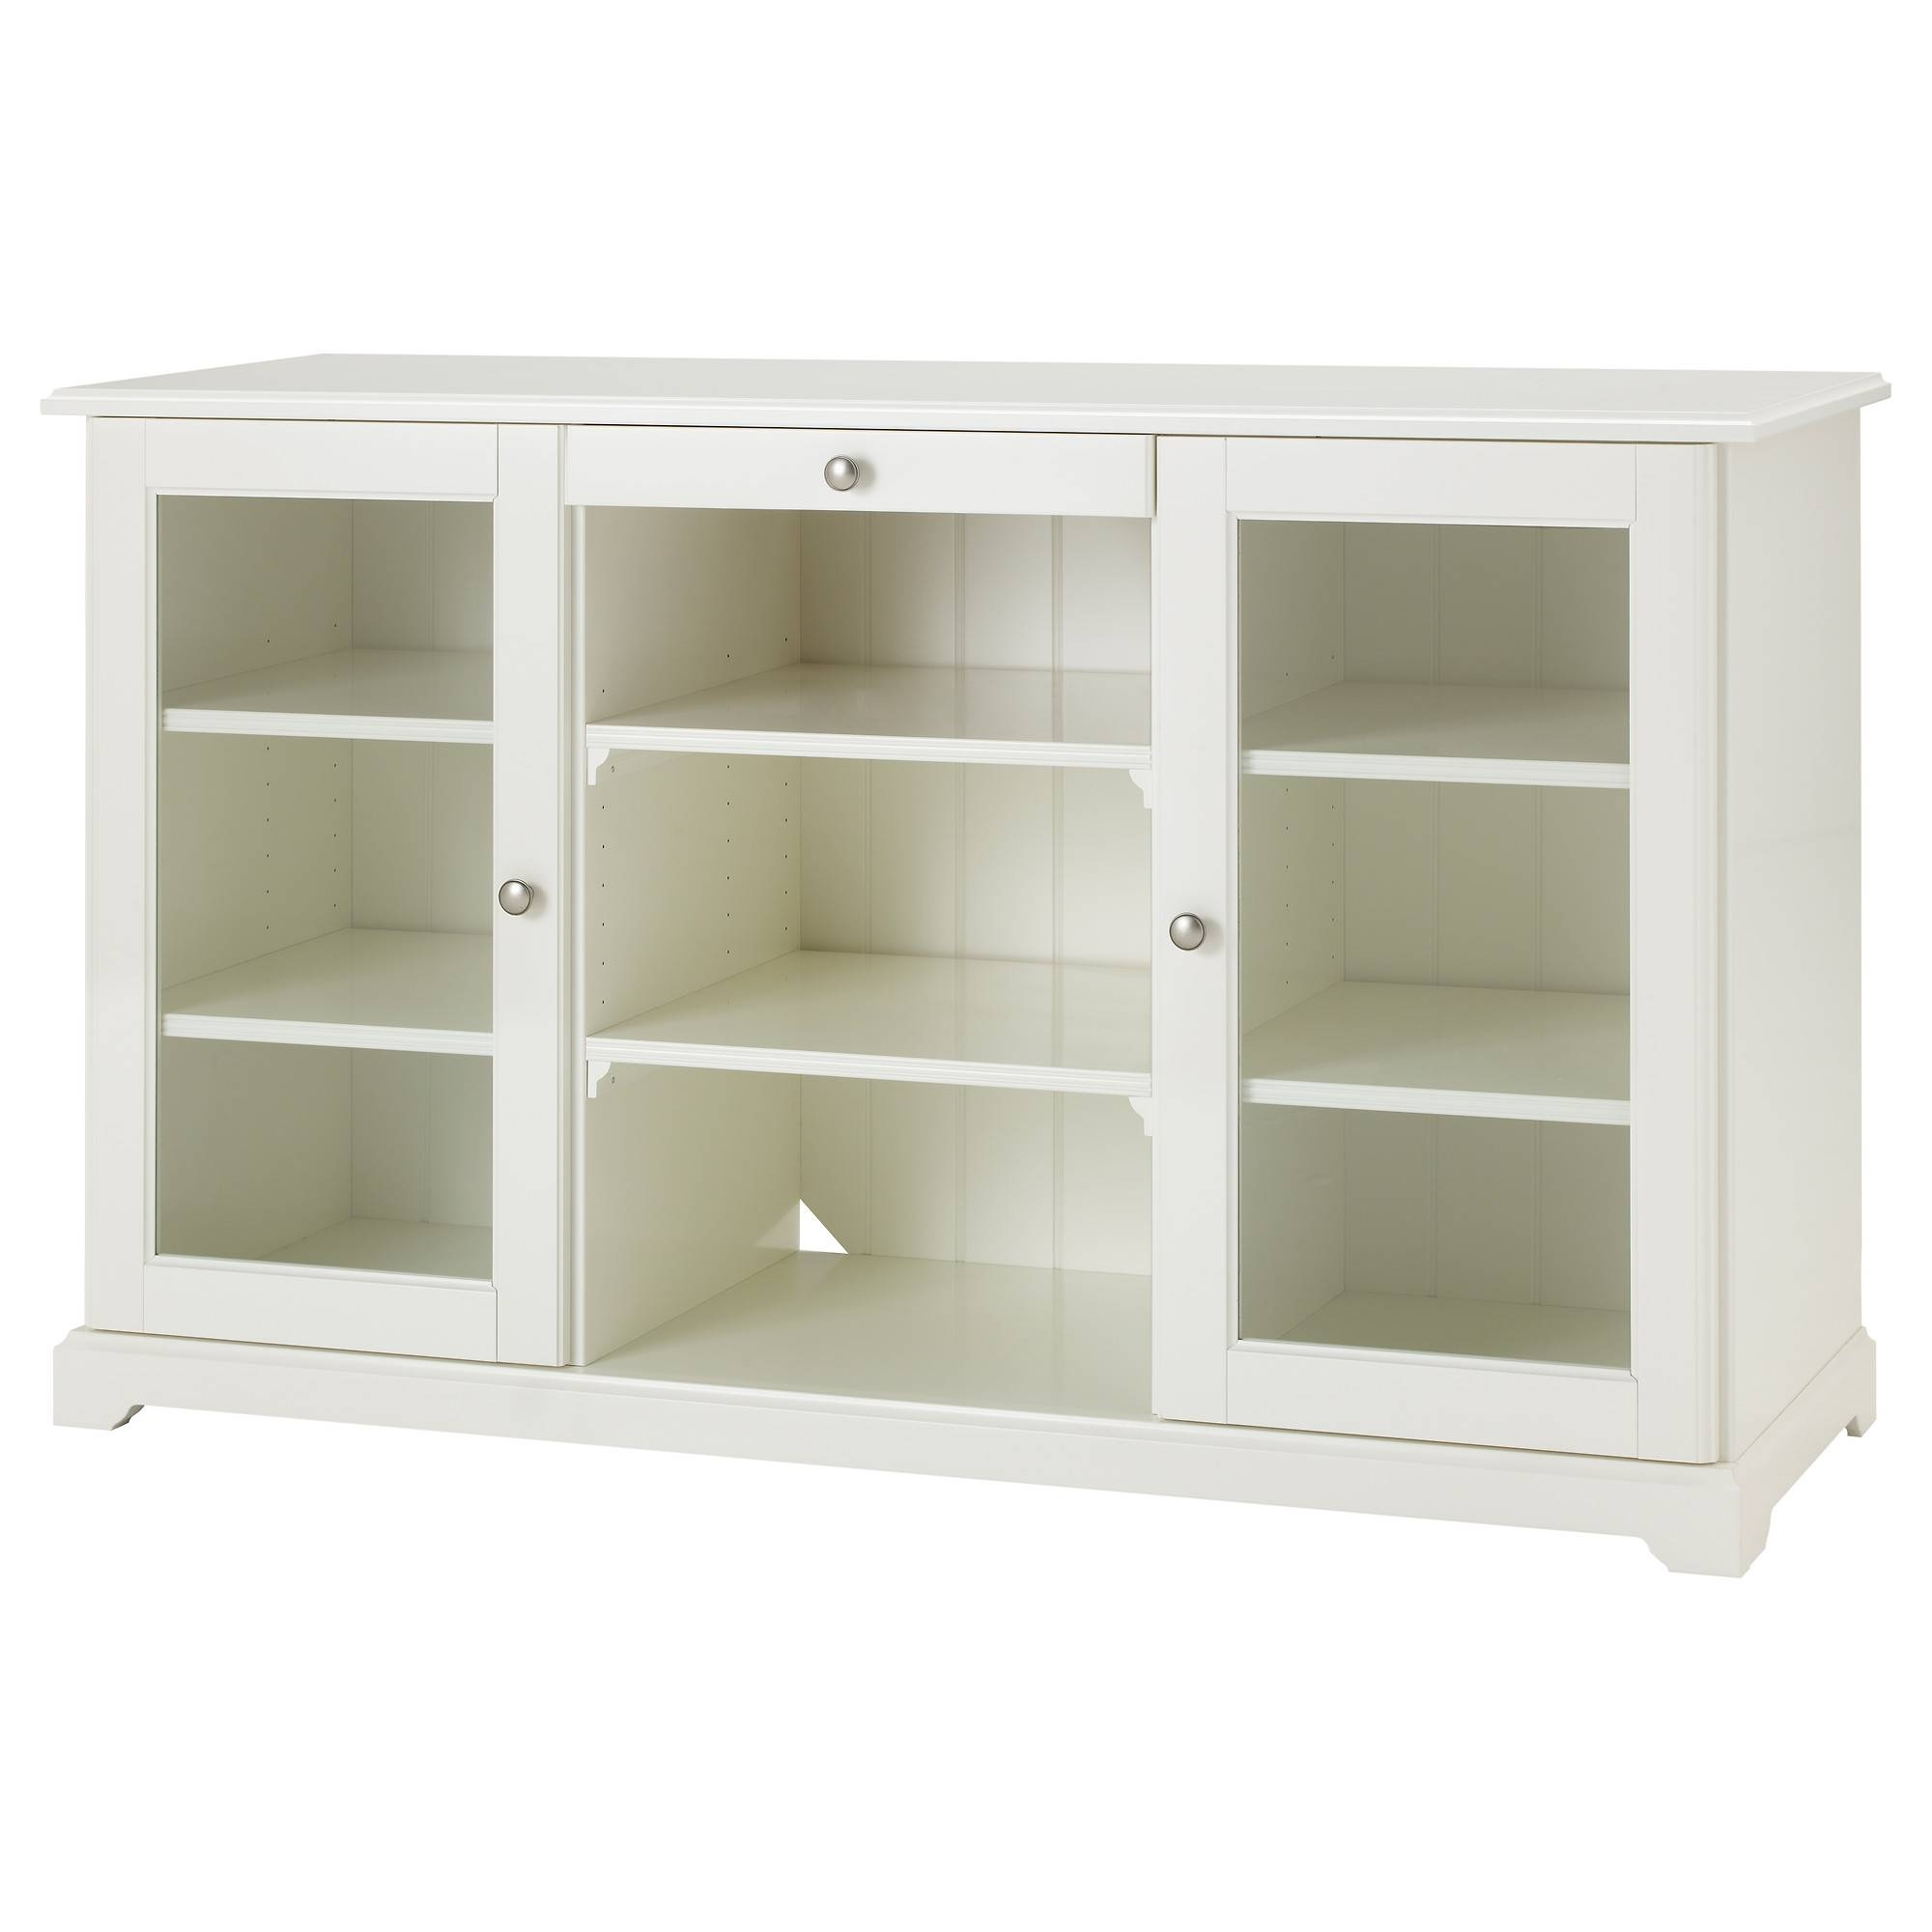 Buffet Tables & Sideboards - Ikea with White Gloss Ikea Sideboards (Image 8 of 15)